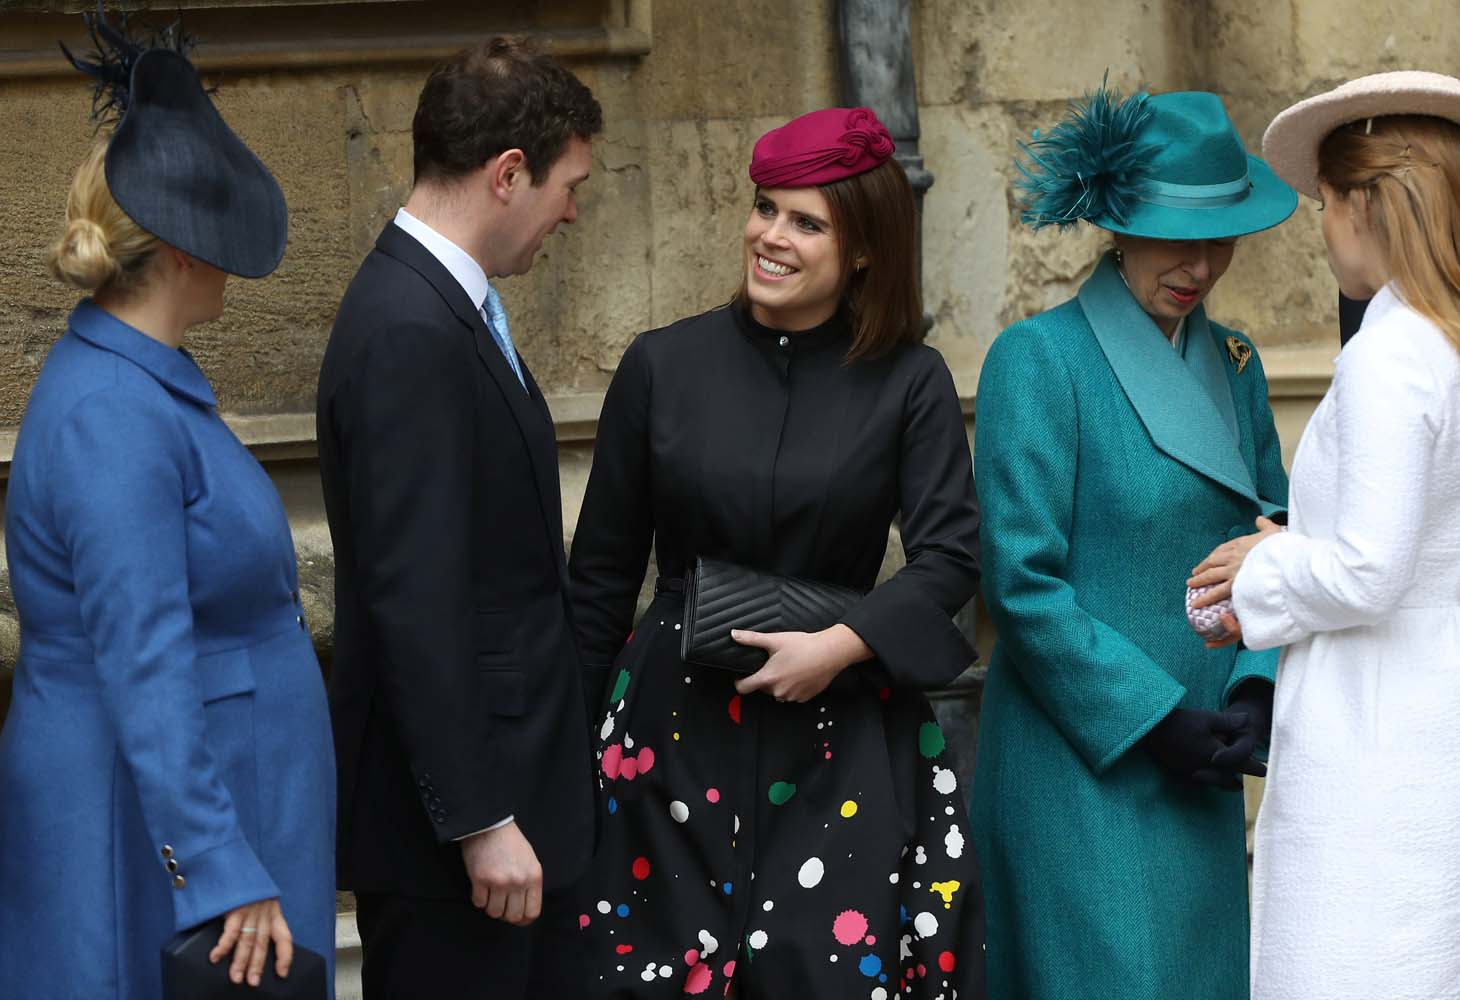 Britain's Princess Eugenie and other members of Britain's royal family arrive for the annual Easter Sunday service at St George's Chapel at Windsor Castle in Windsor, Britain, April 1, 2018. REUTERS/Simon Dawson